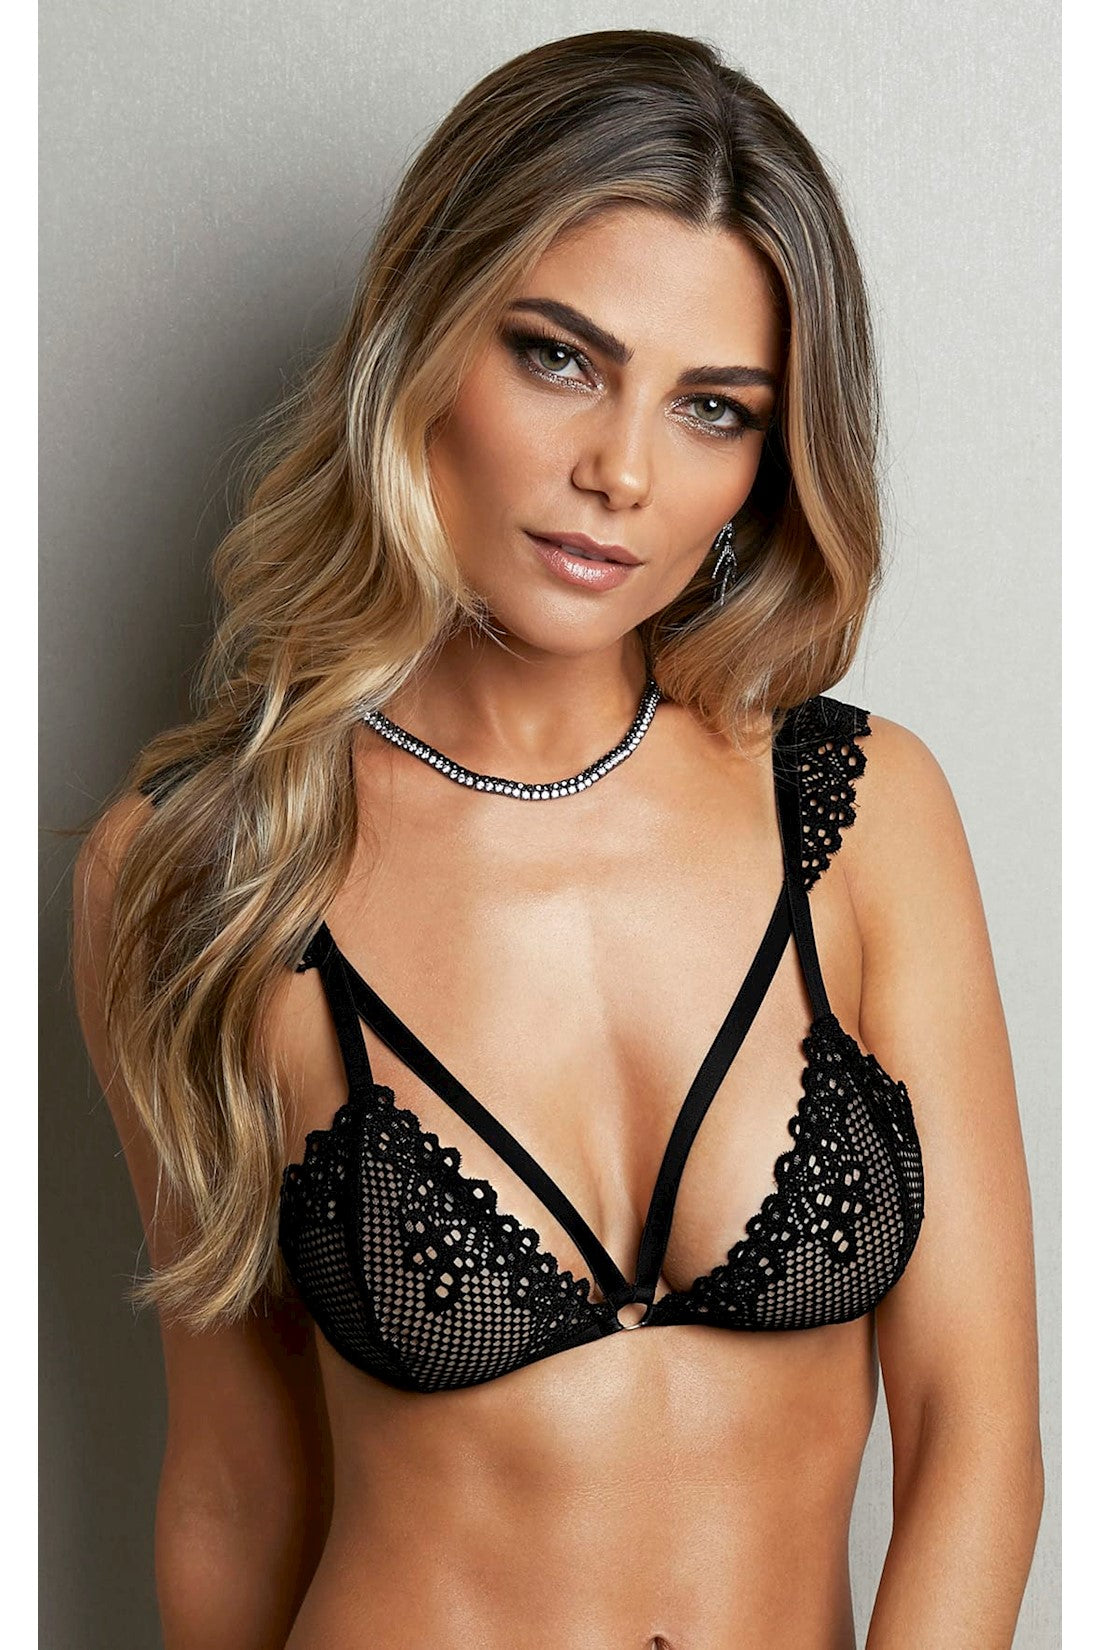 Strappy Bra in Black Lace, Belles